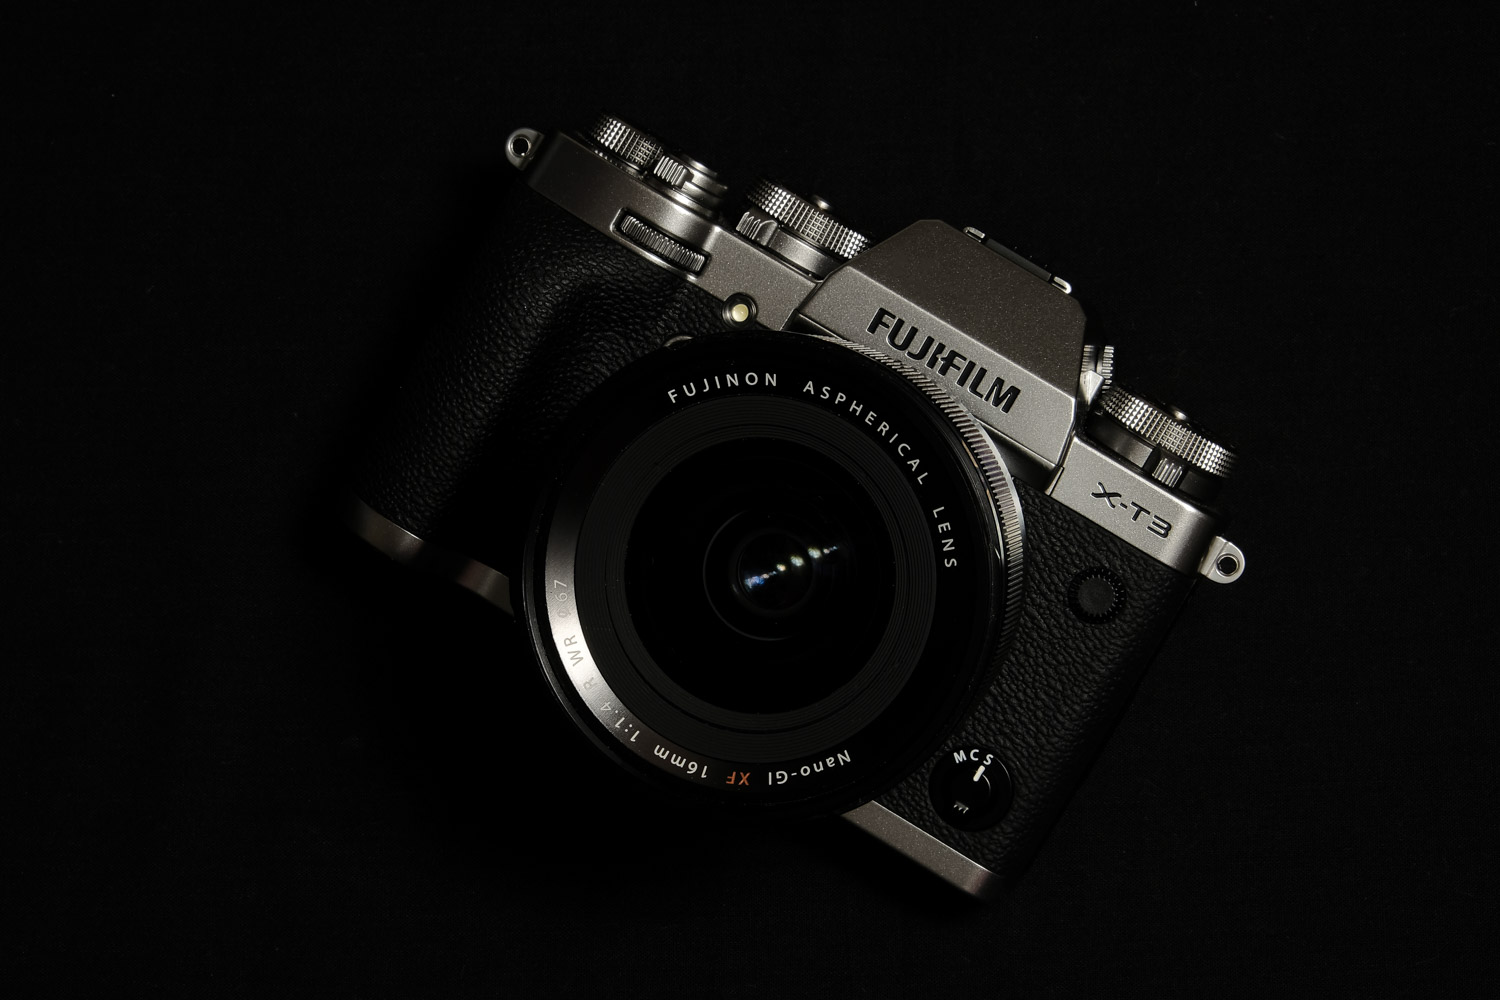 The Best Fujifilm X-Series Kits for Travel Photography